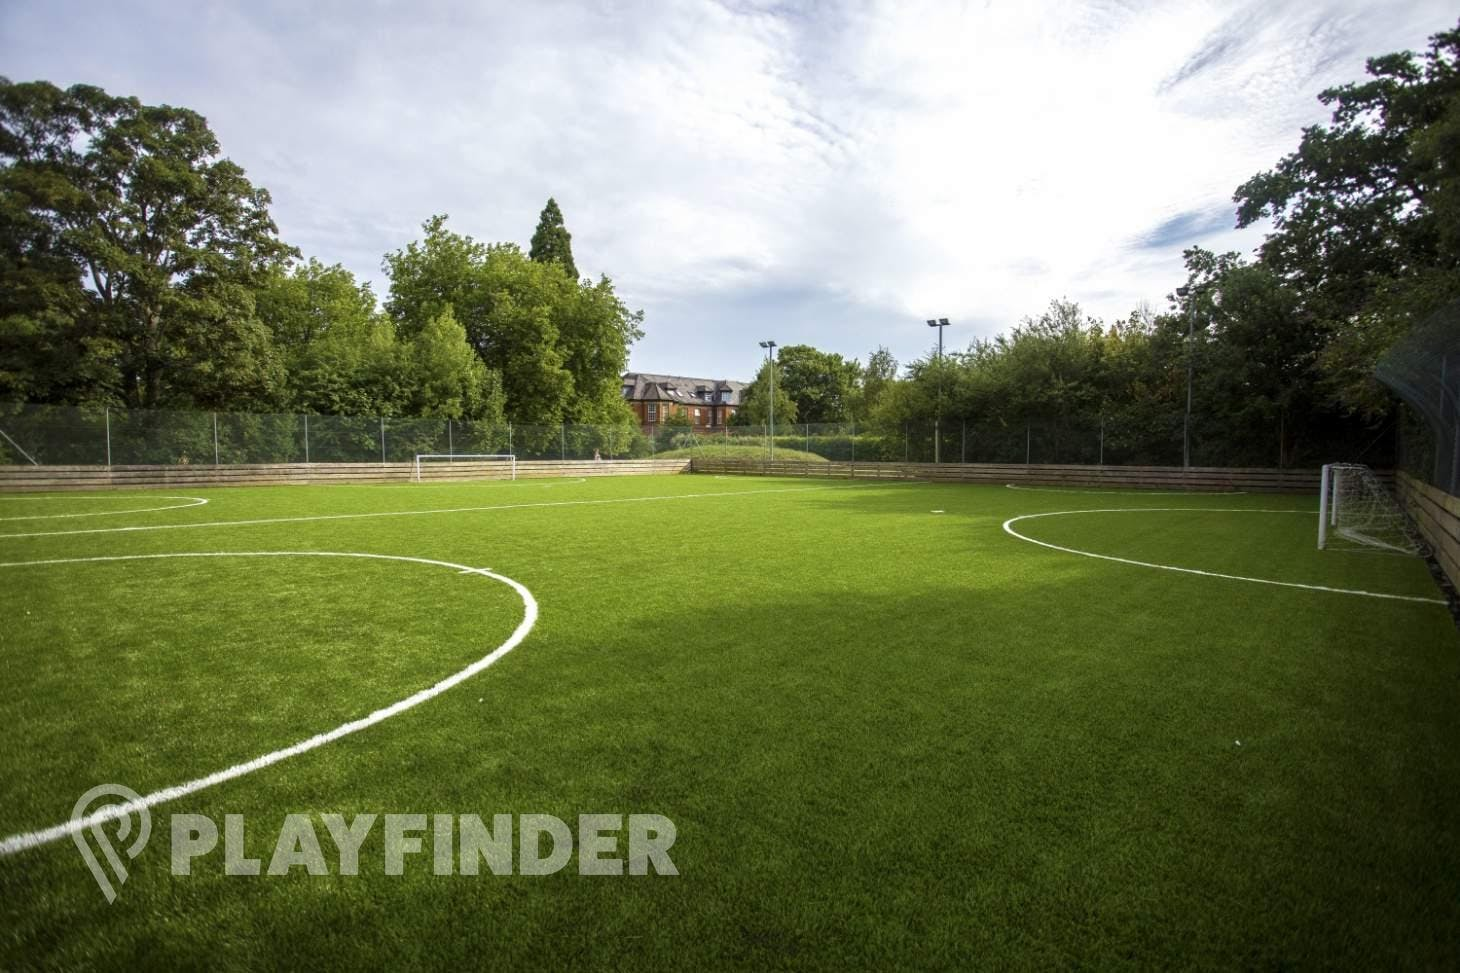 YMCA St Albans 5 a side | 3G Astroturf football pitch